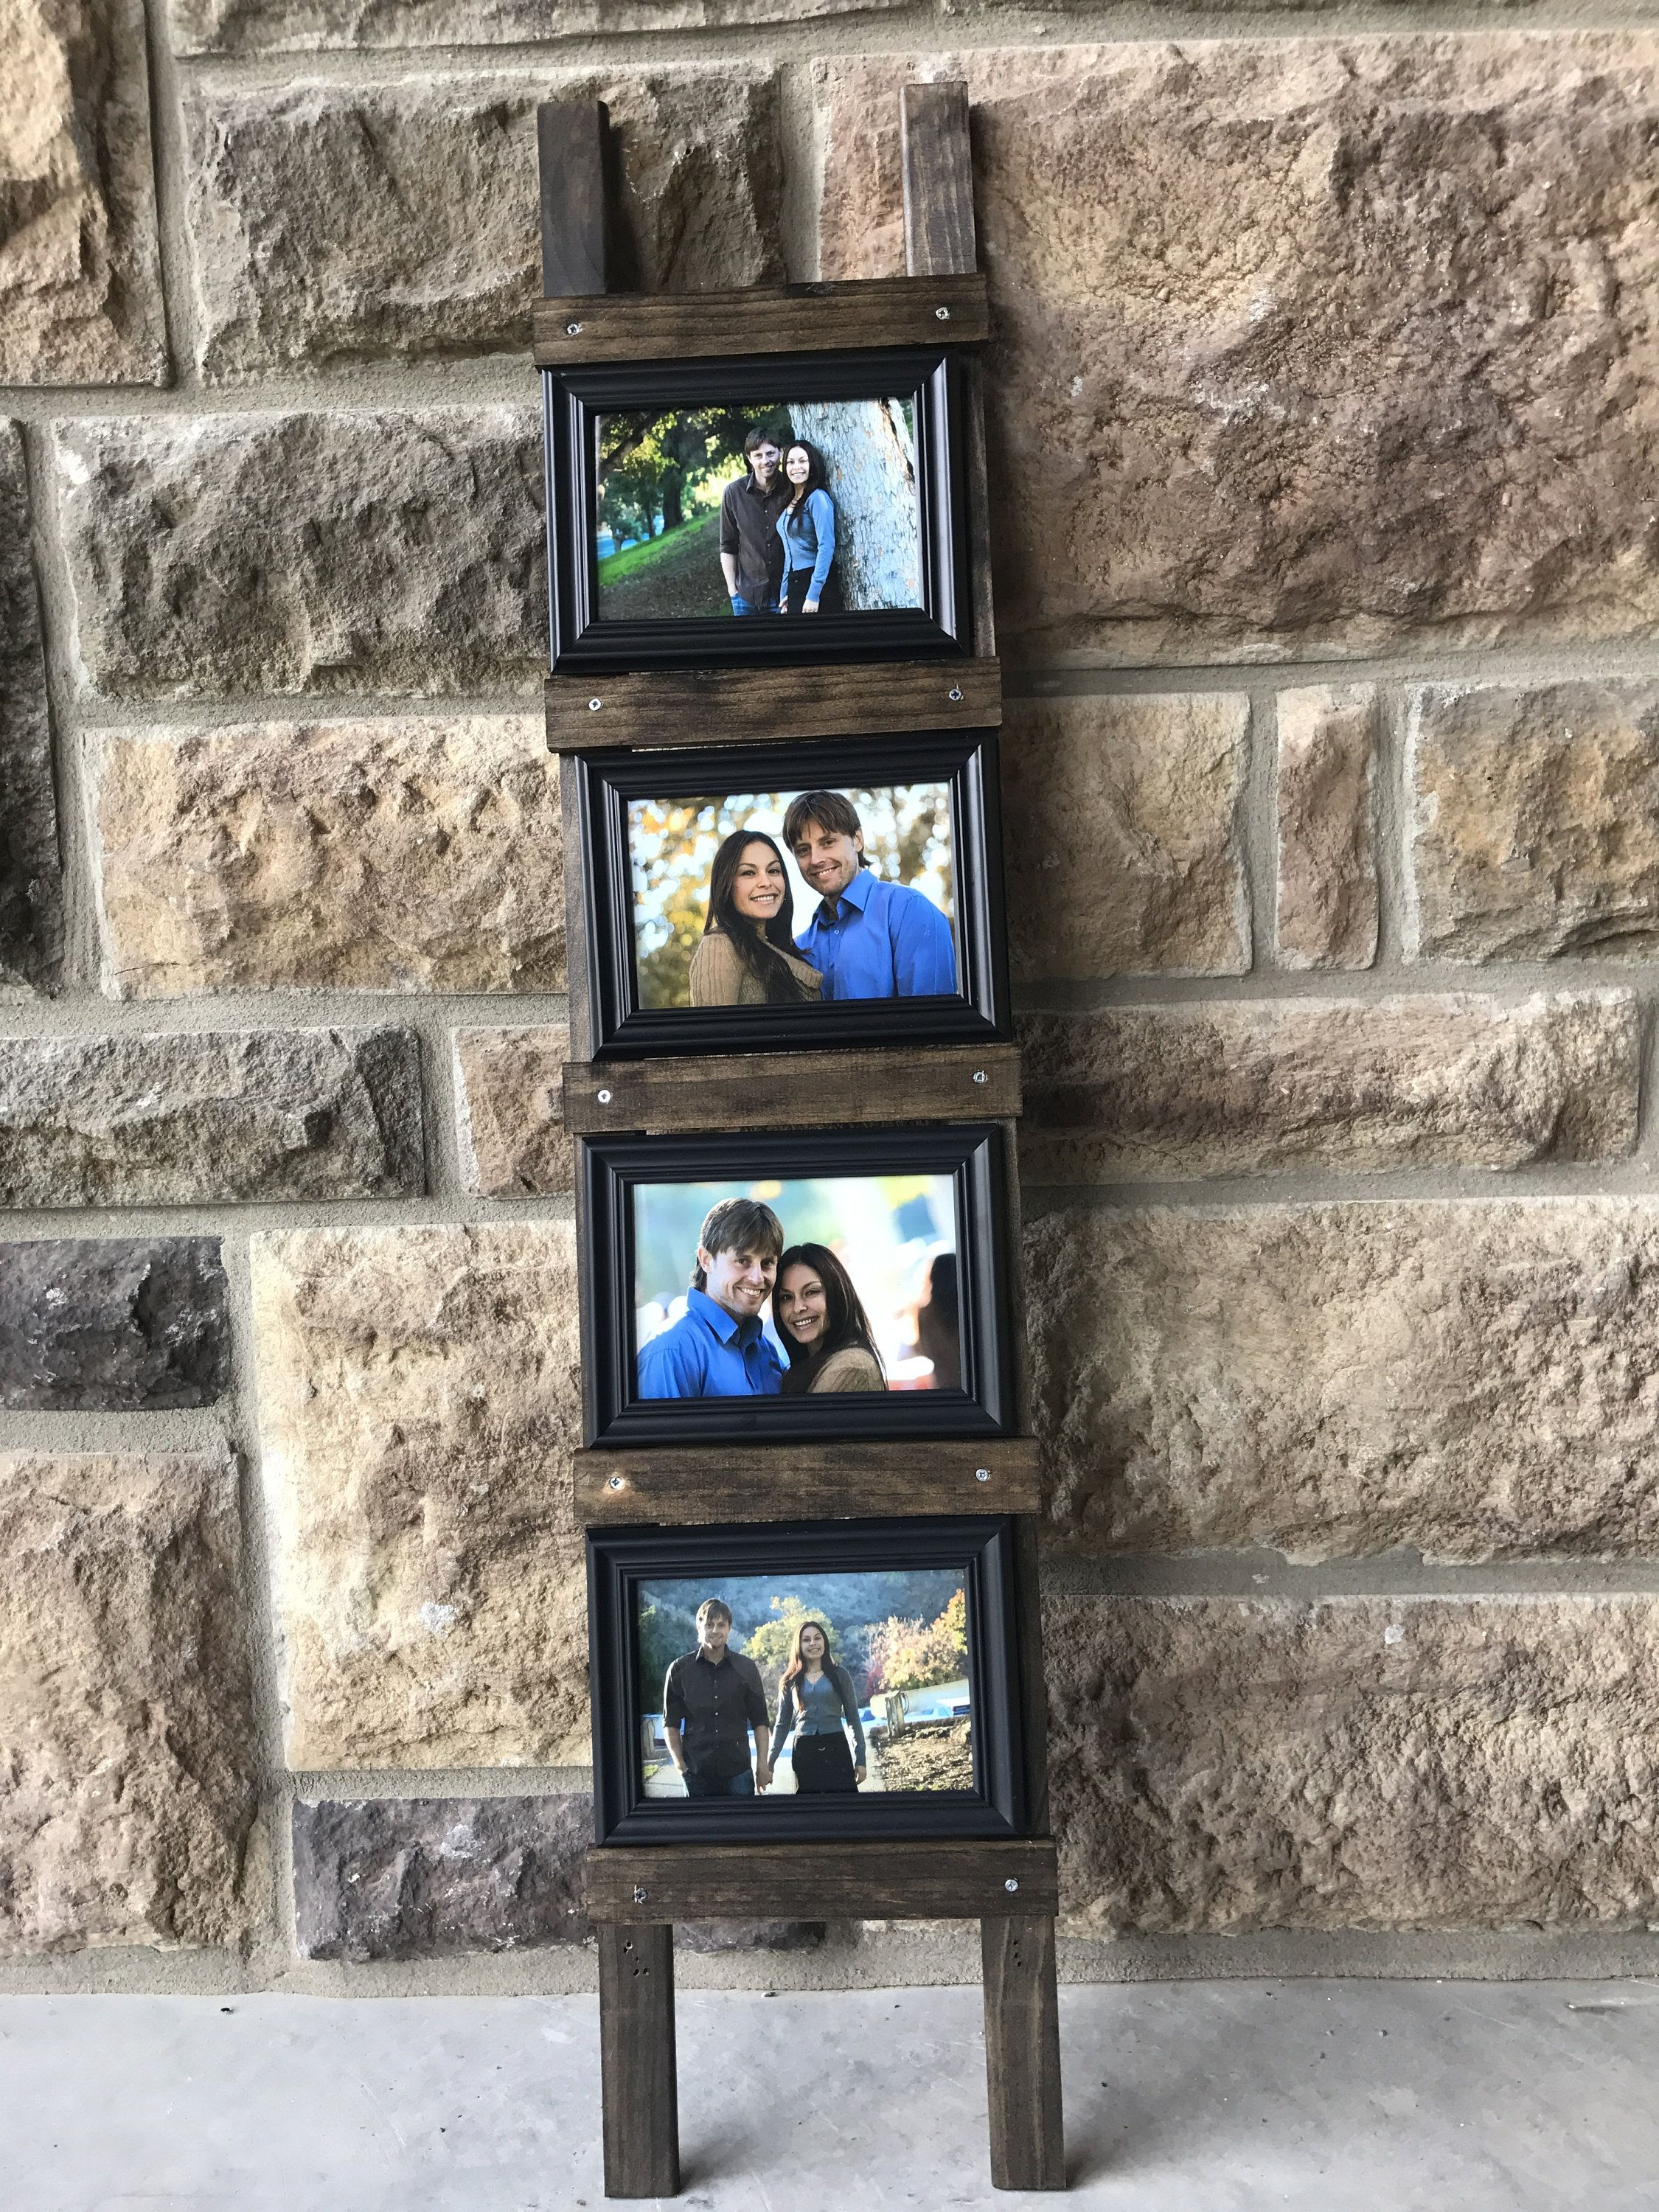 Rustic Photo Frame Ladder 45x7 Or 4x6 Frames Included Photo Etsy Rustic Photo Frames Framed Photo Collage Picture Frame Decor